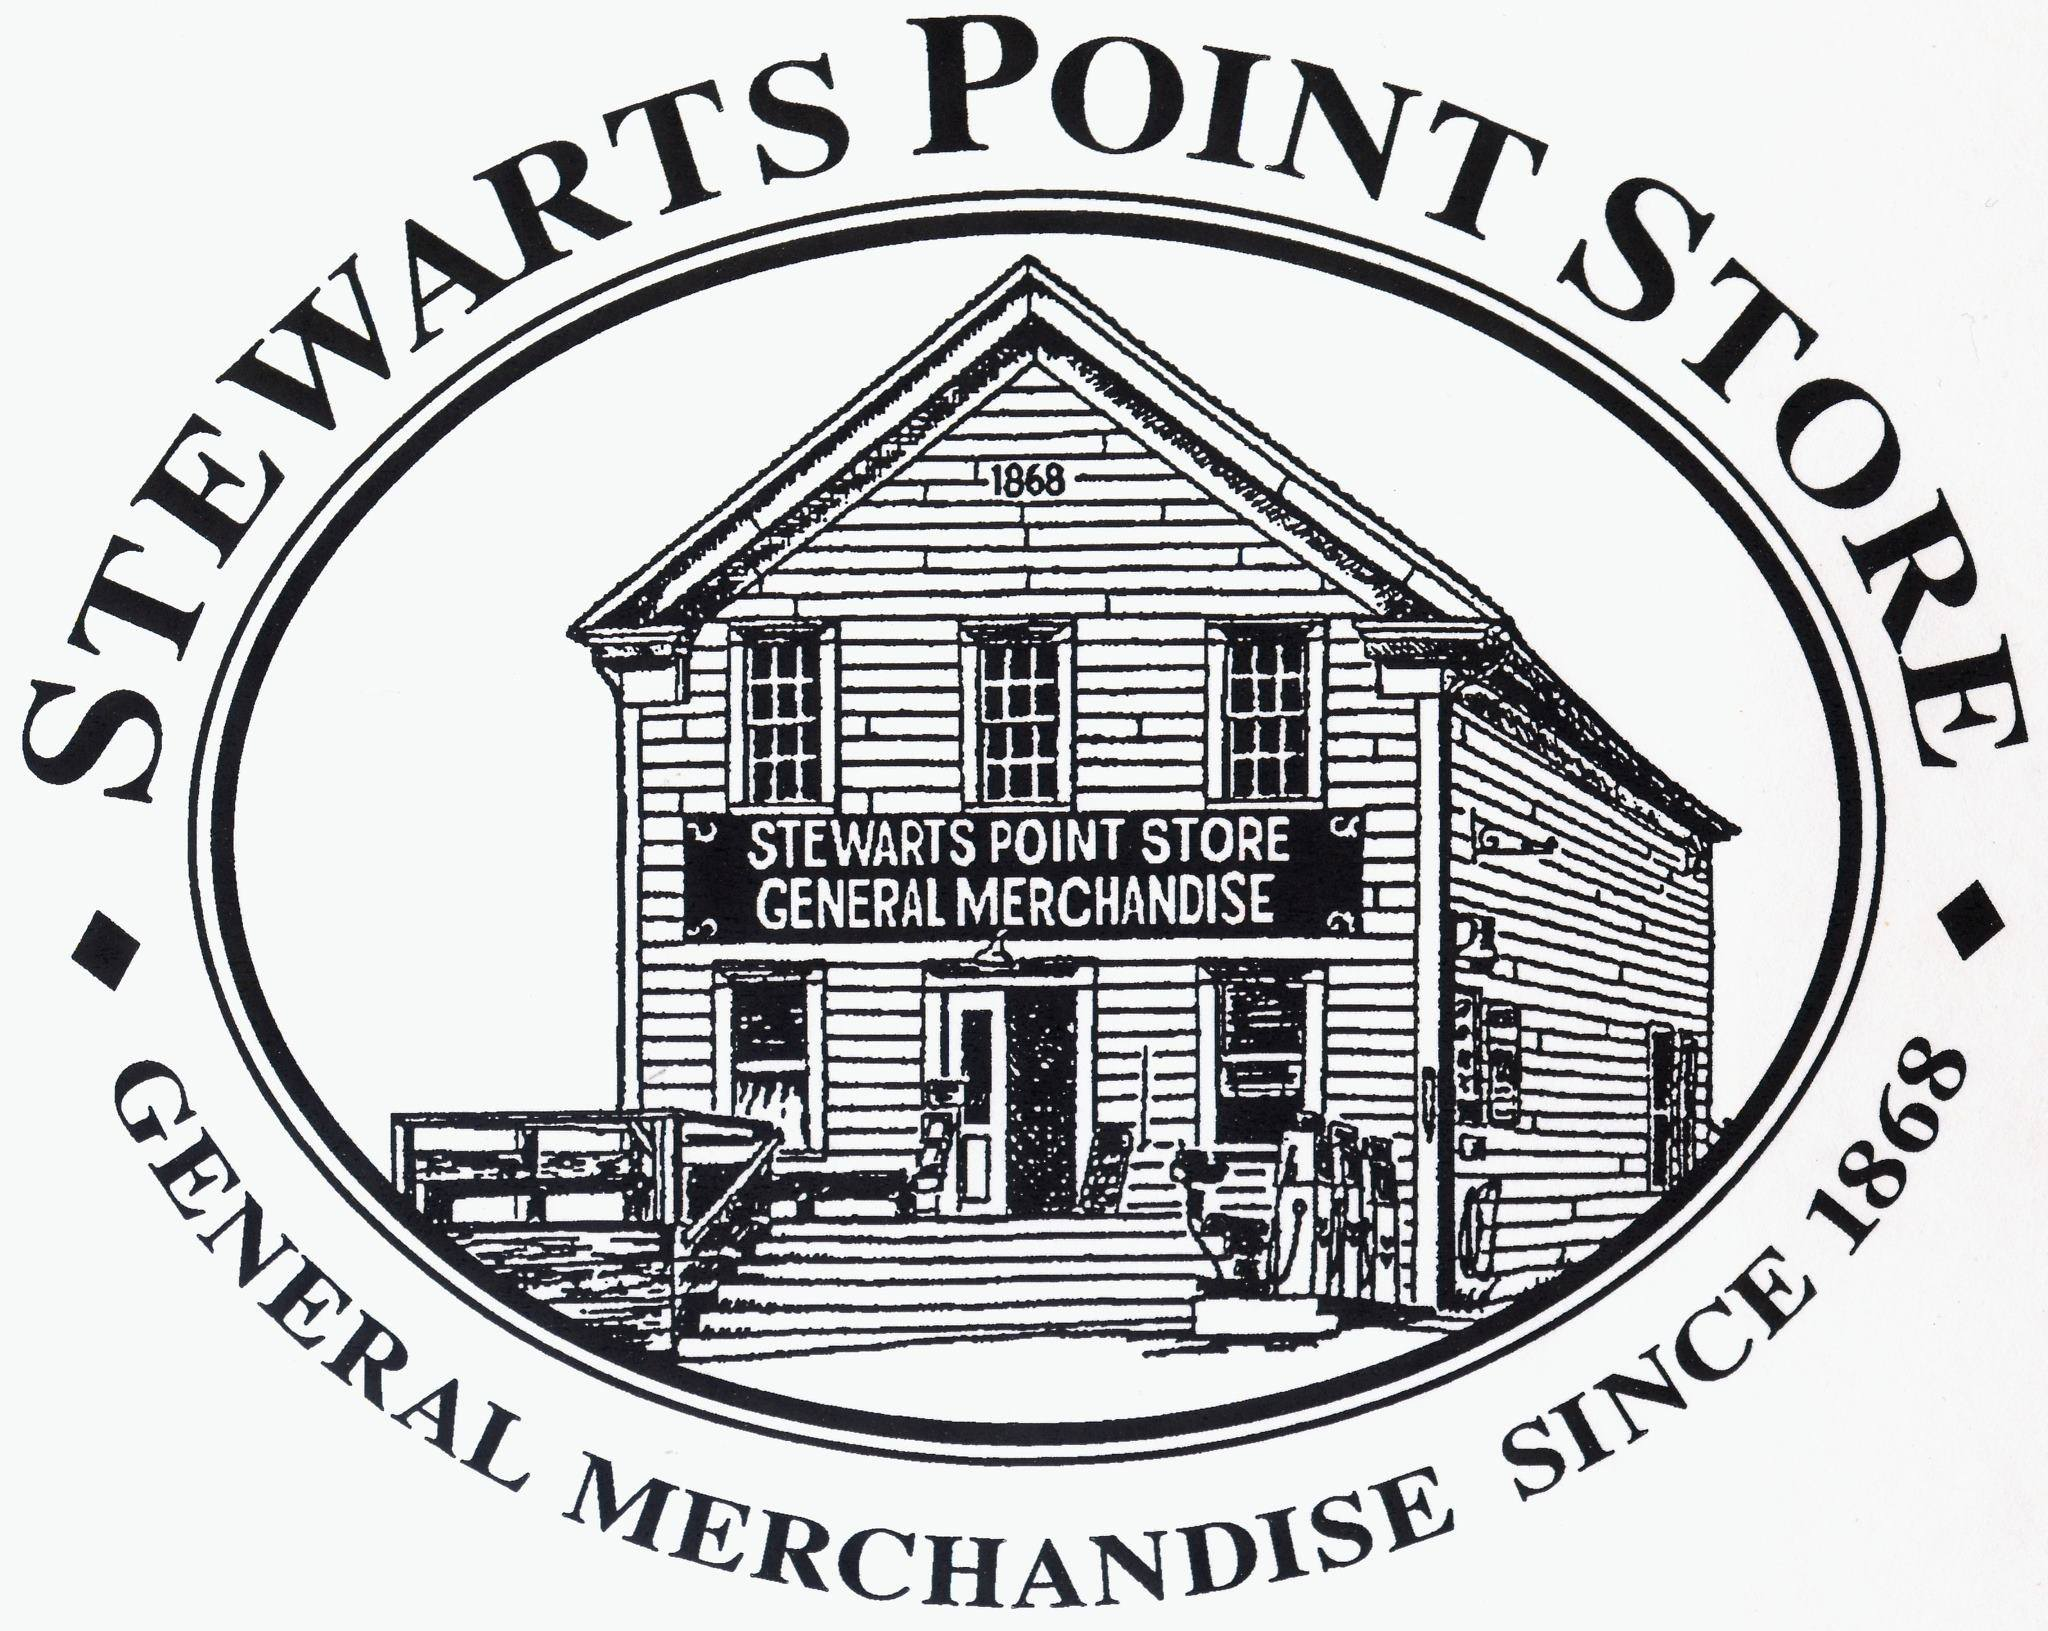 A Change Is In Store For Stewarts Point Store